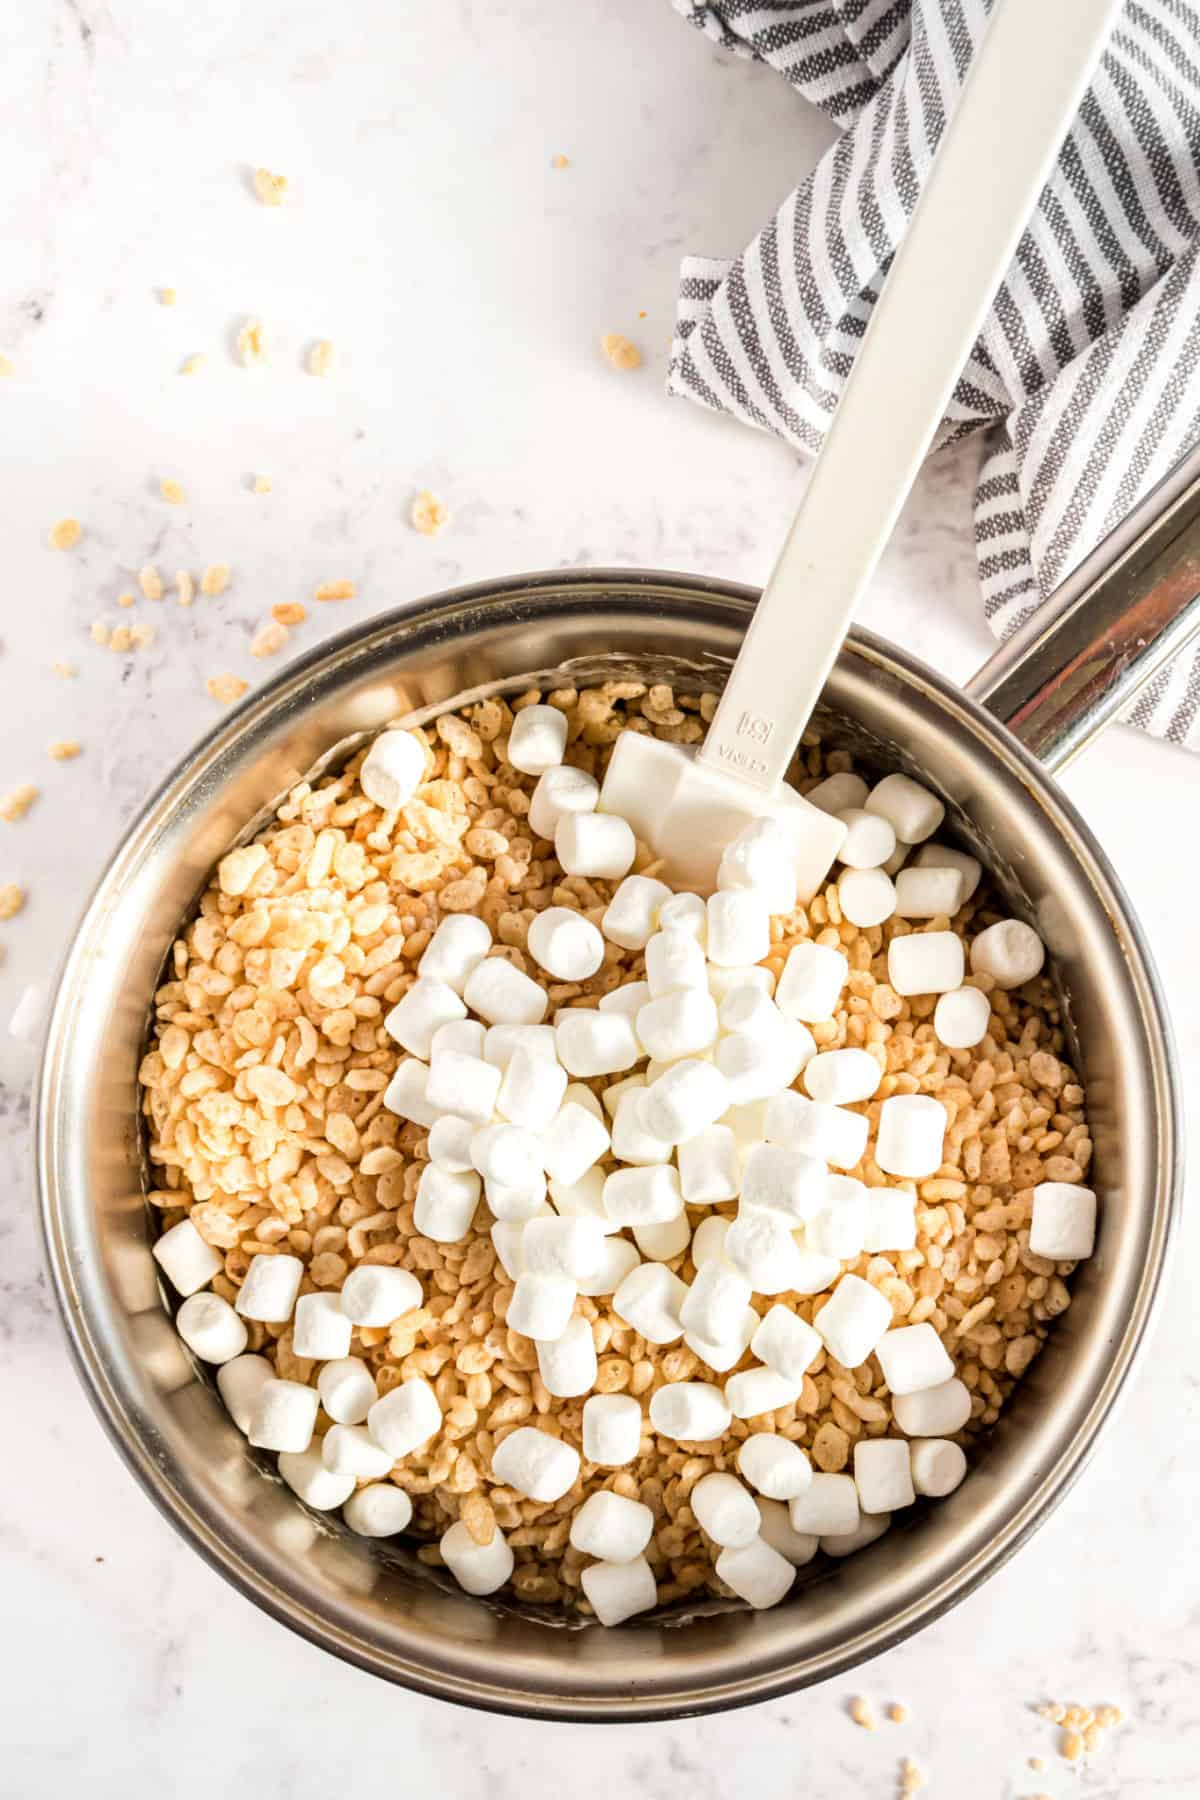 Melted butter and marshmallow for rice krispie treats in a sauce pan with cereal and more marshmallows being added.